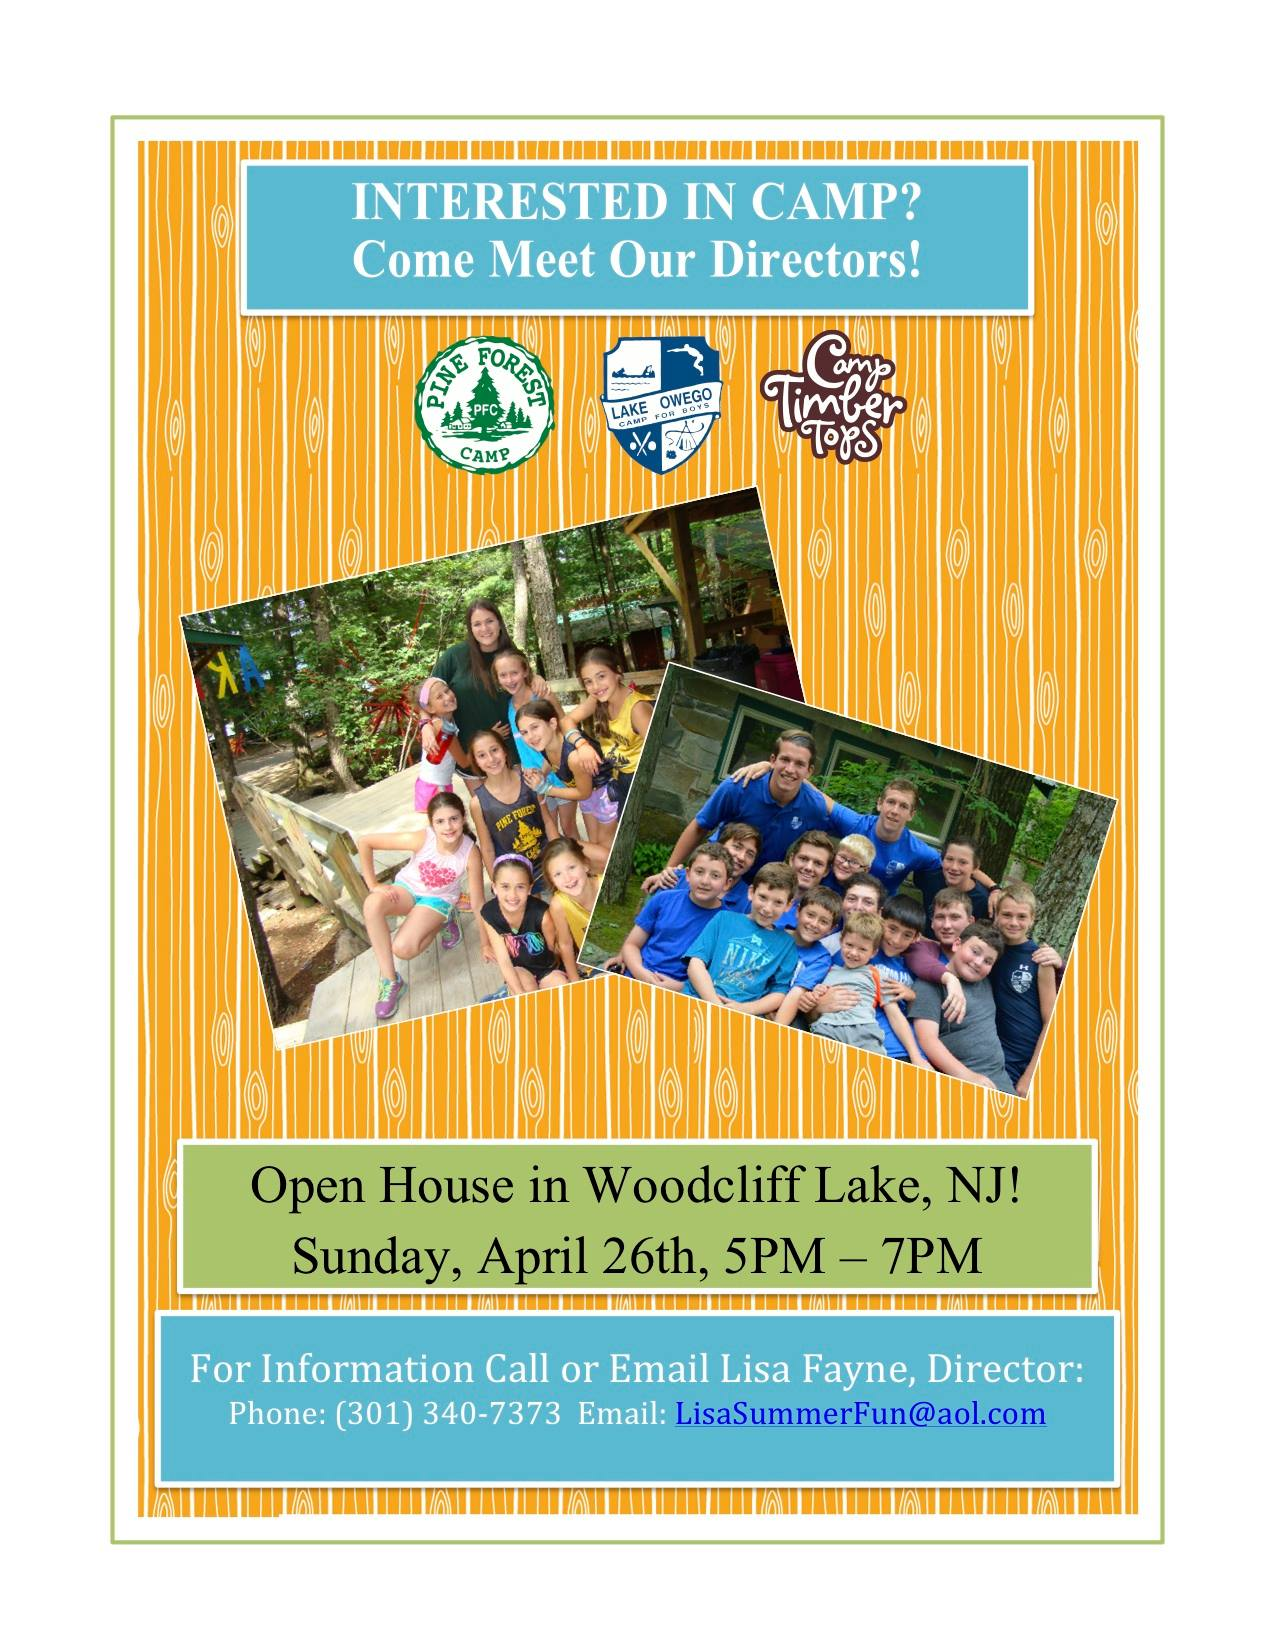 Woodcliff Lake Open House: This Sunday! - Lake Owego Camp